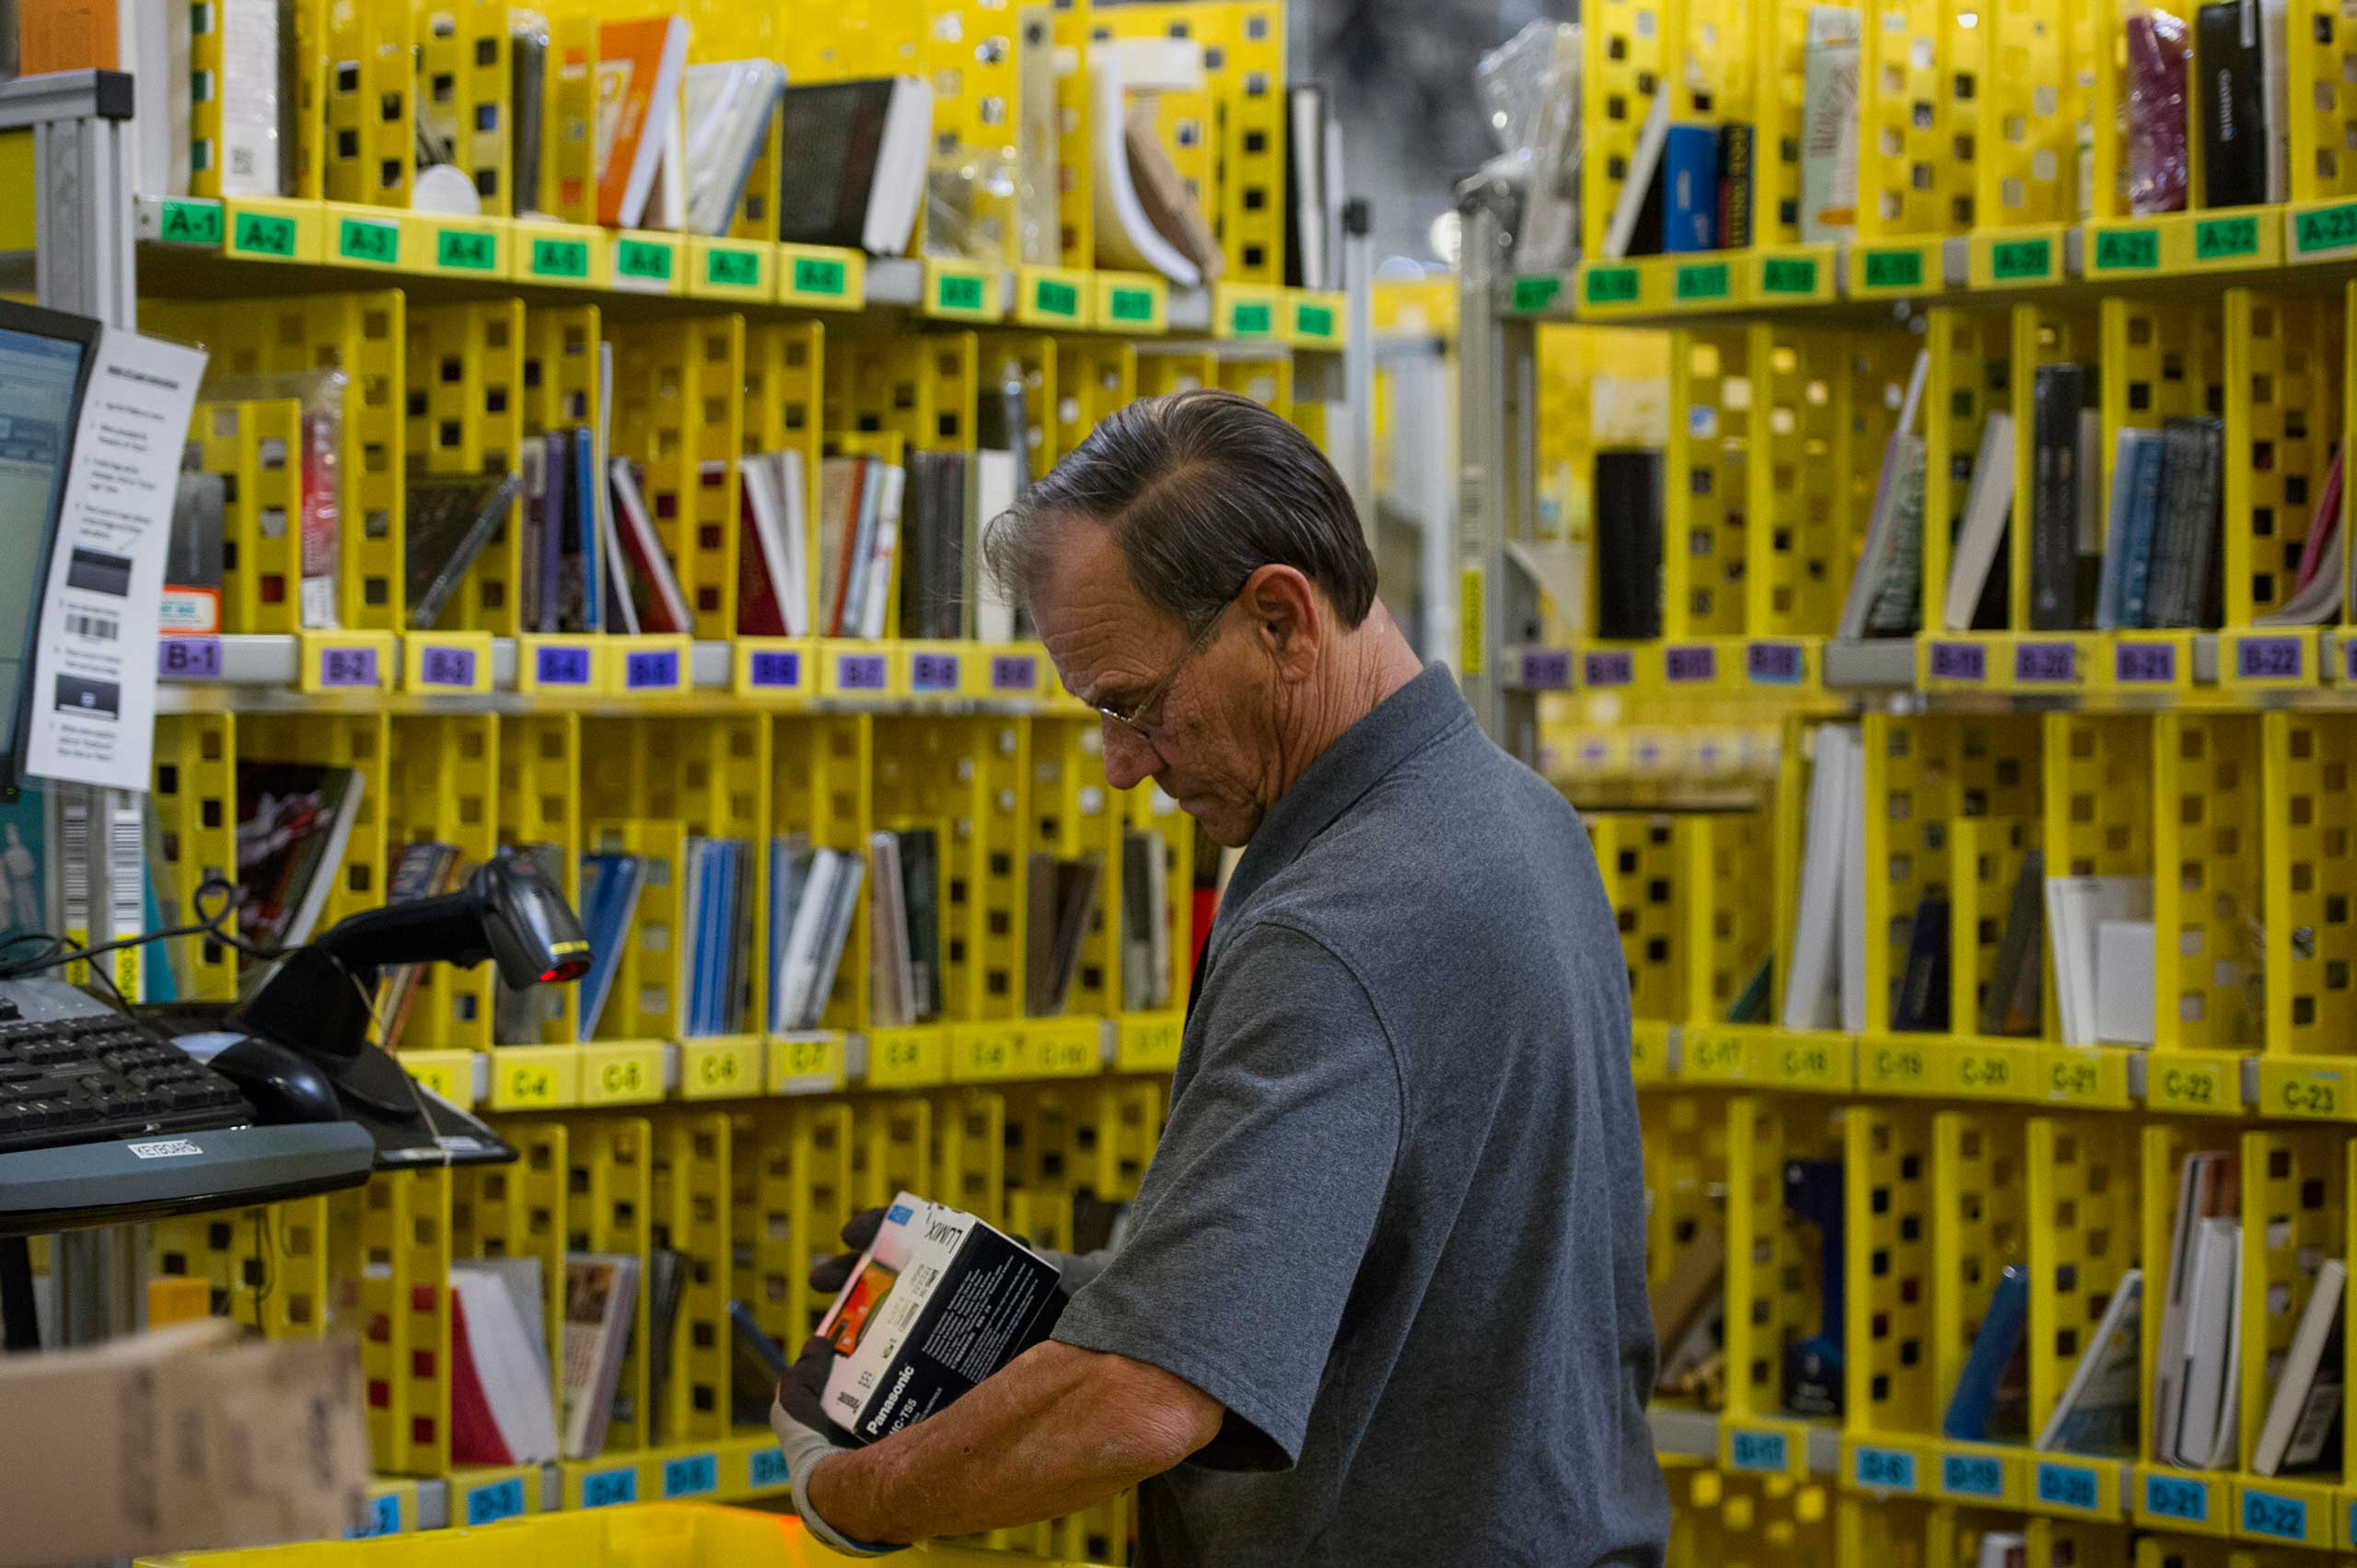 An employee packs merchandise for shipment at the Amazon.com Inc. fulfillment center in Phoenix, Arizona, Dec. 2, 2013.